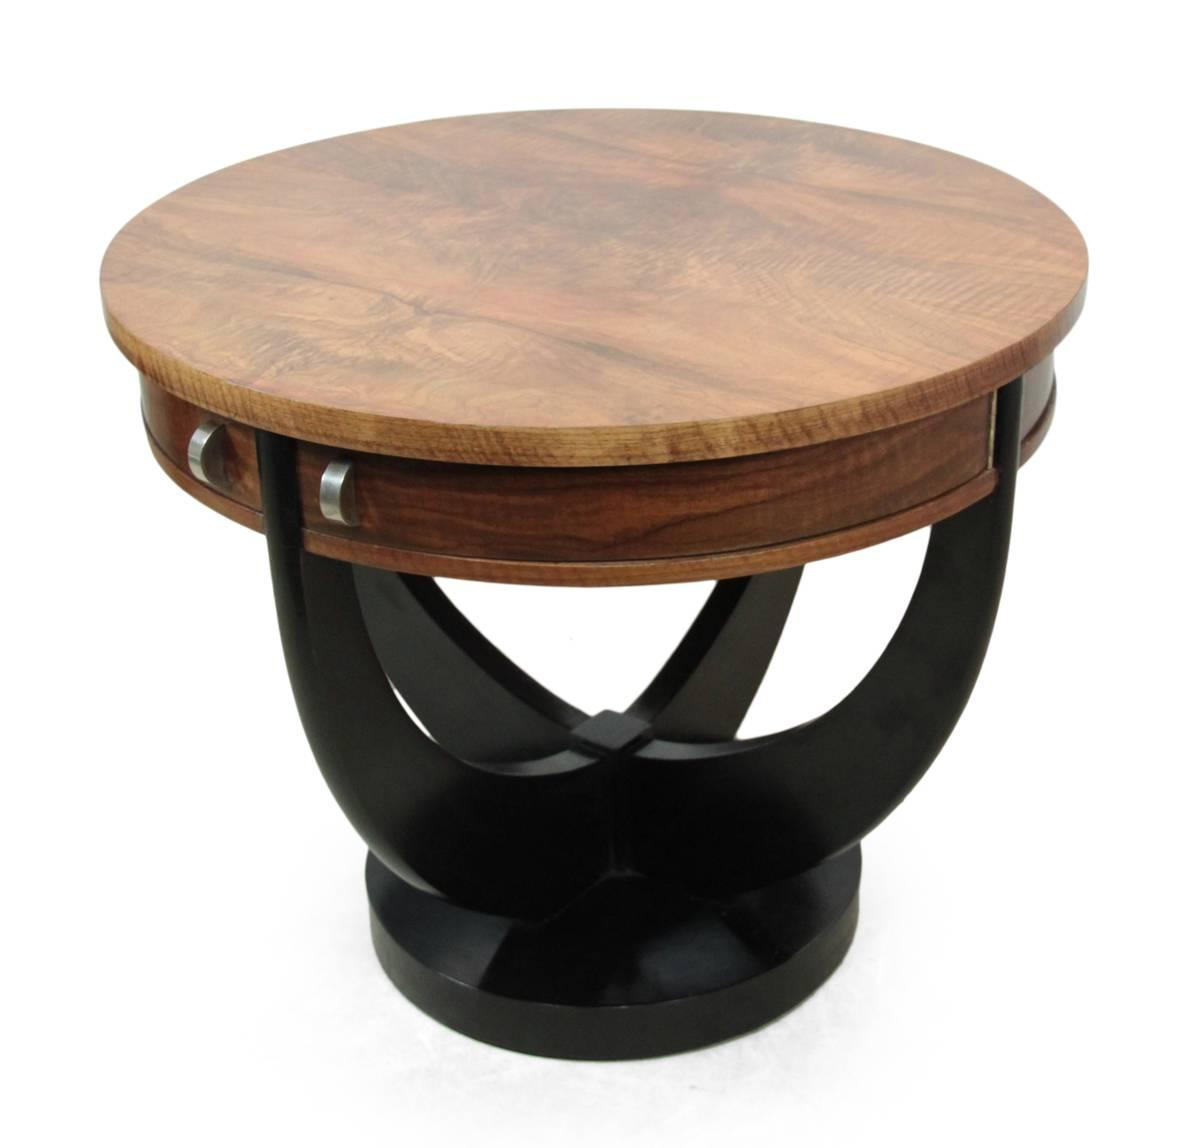 Table Ronde Bois Solde